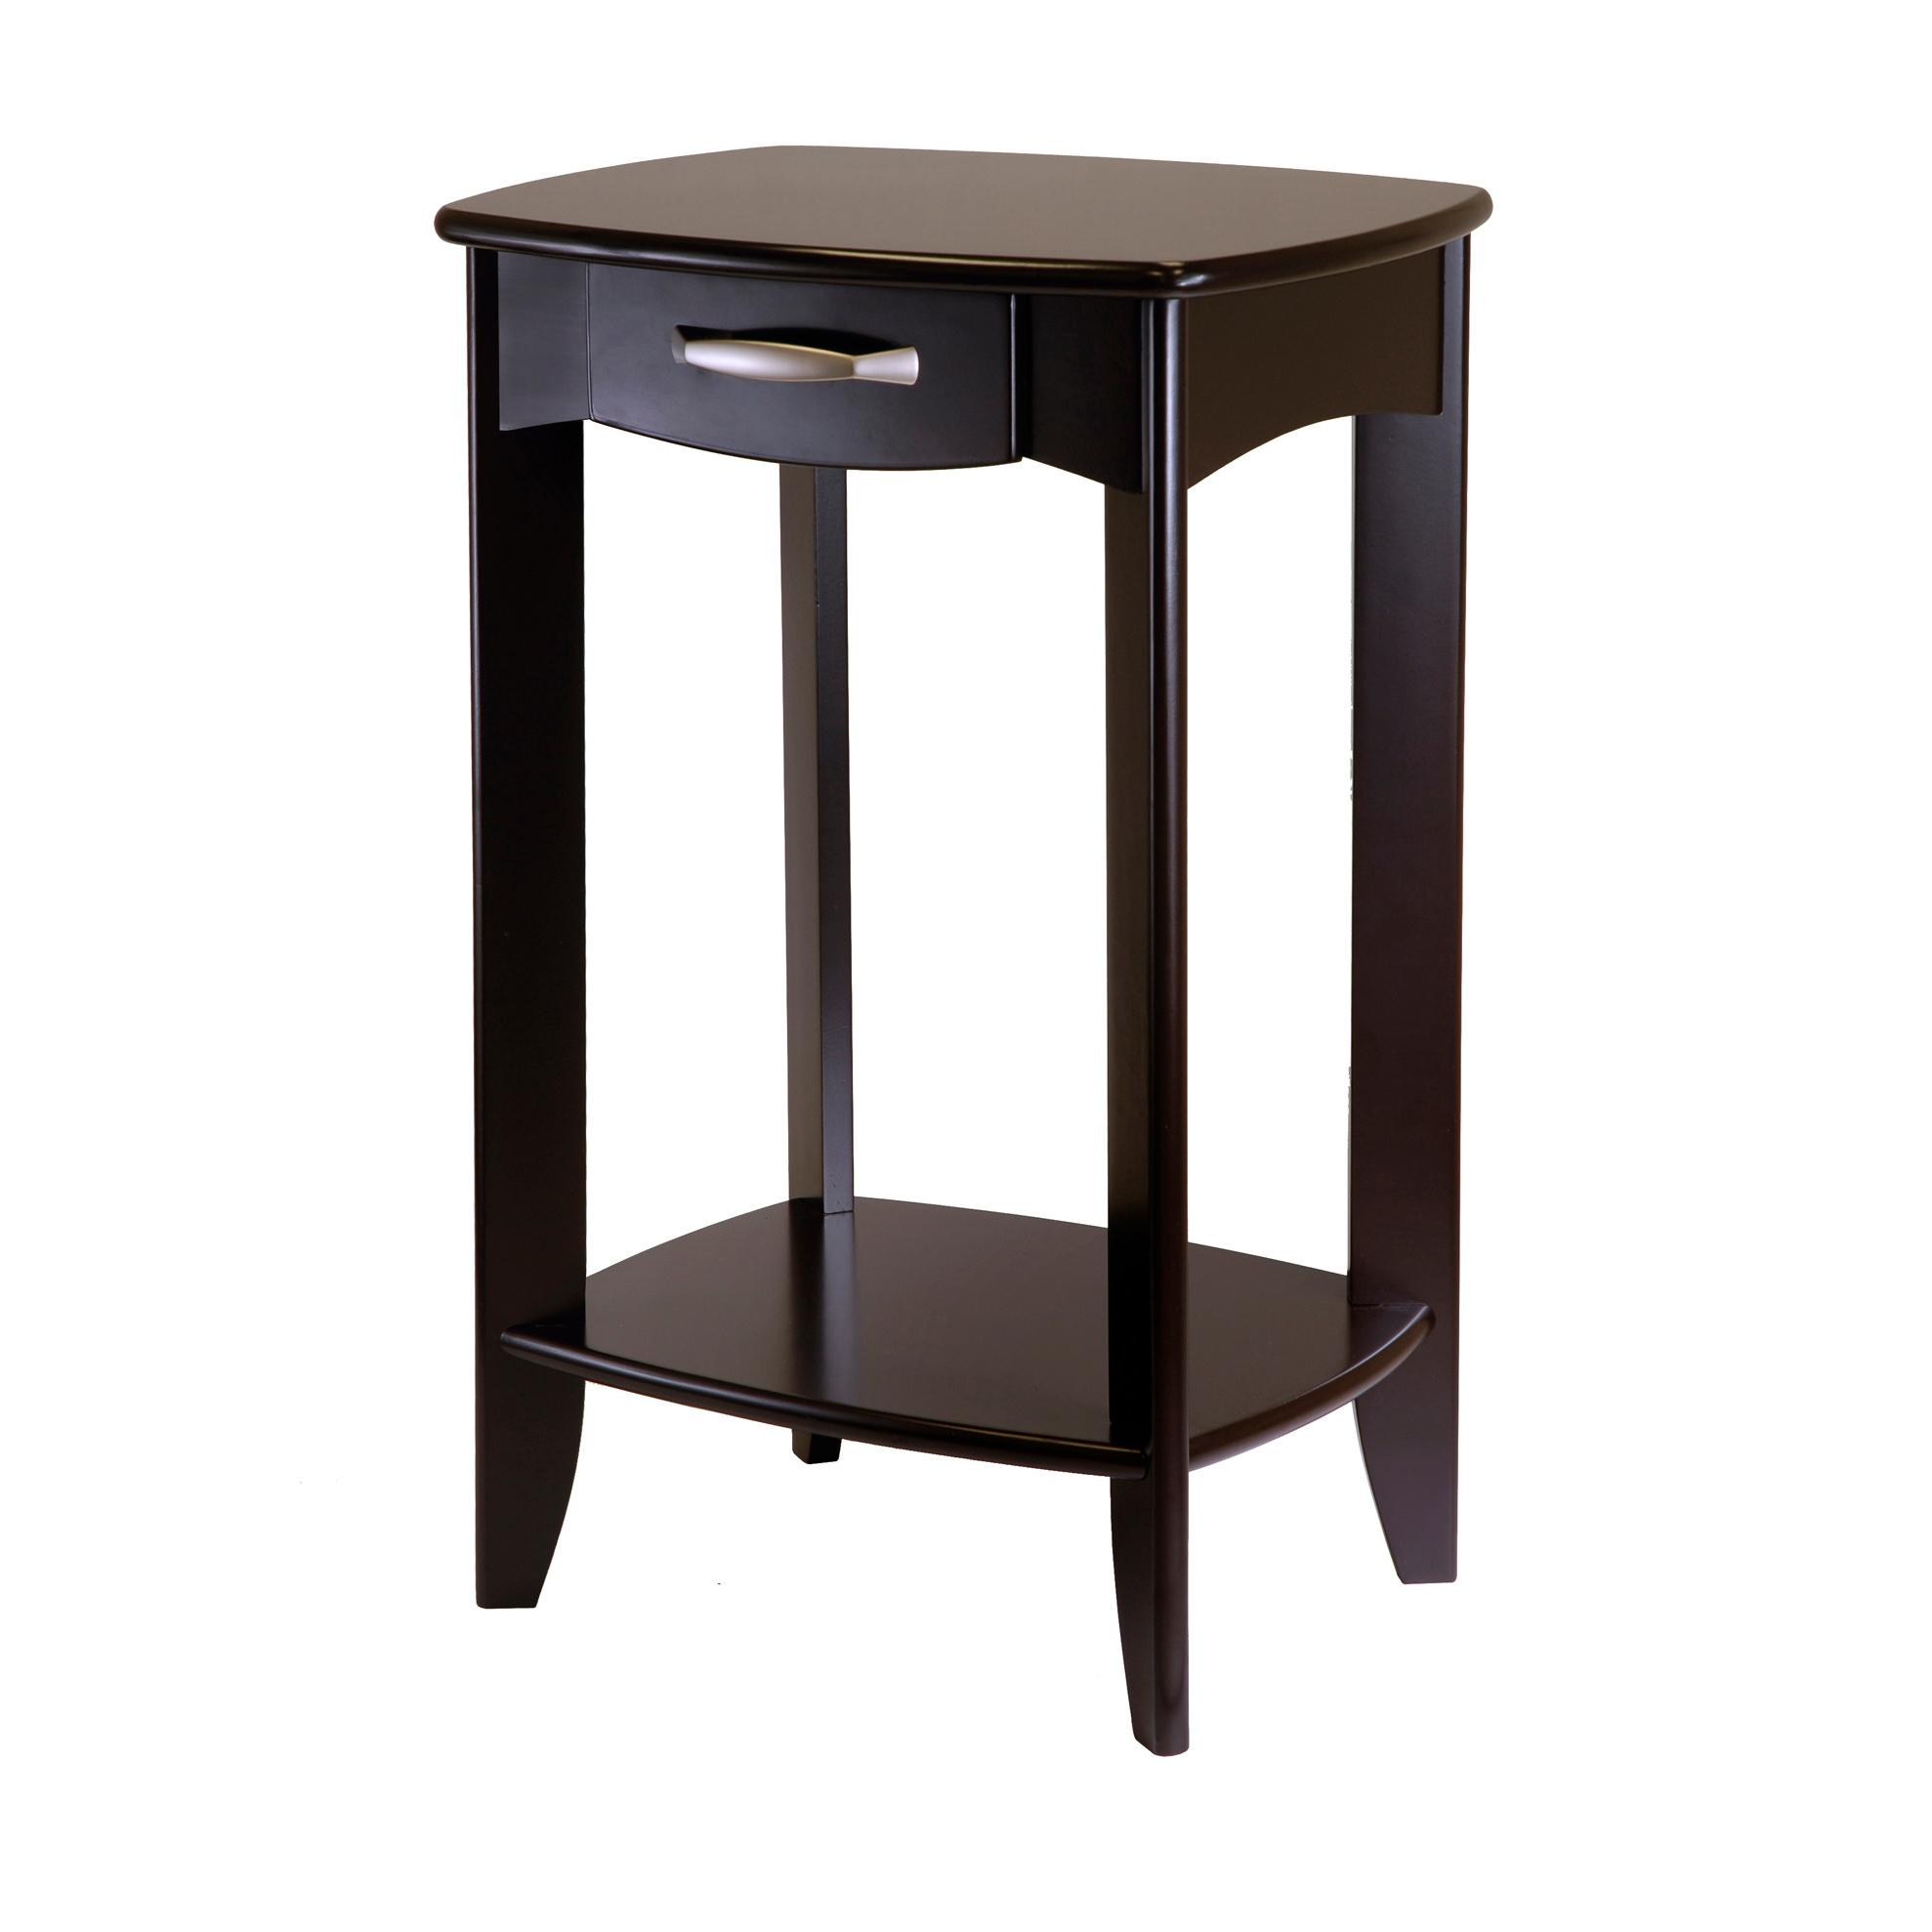 Kitchen Side Table: Amazon.com: Winsome Wood Danica Side Table: Kitchen & Dining